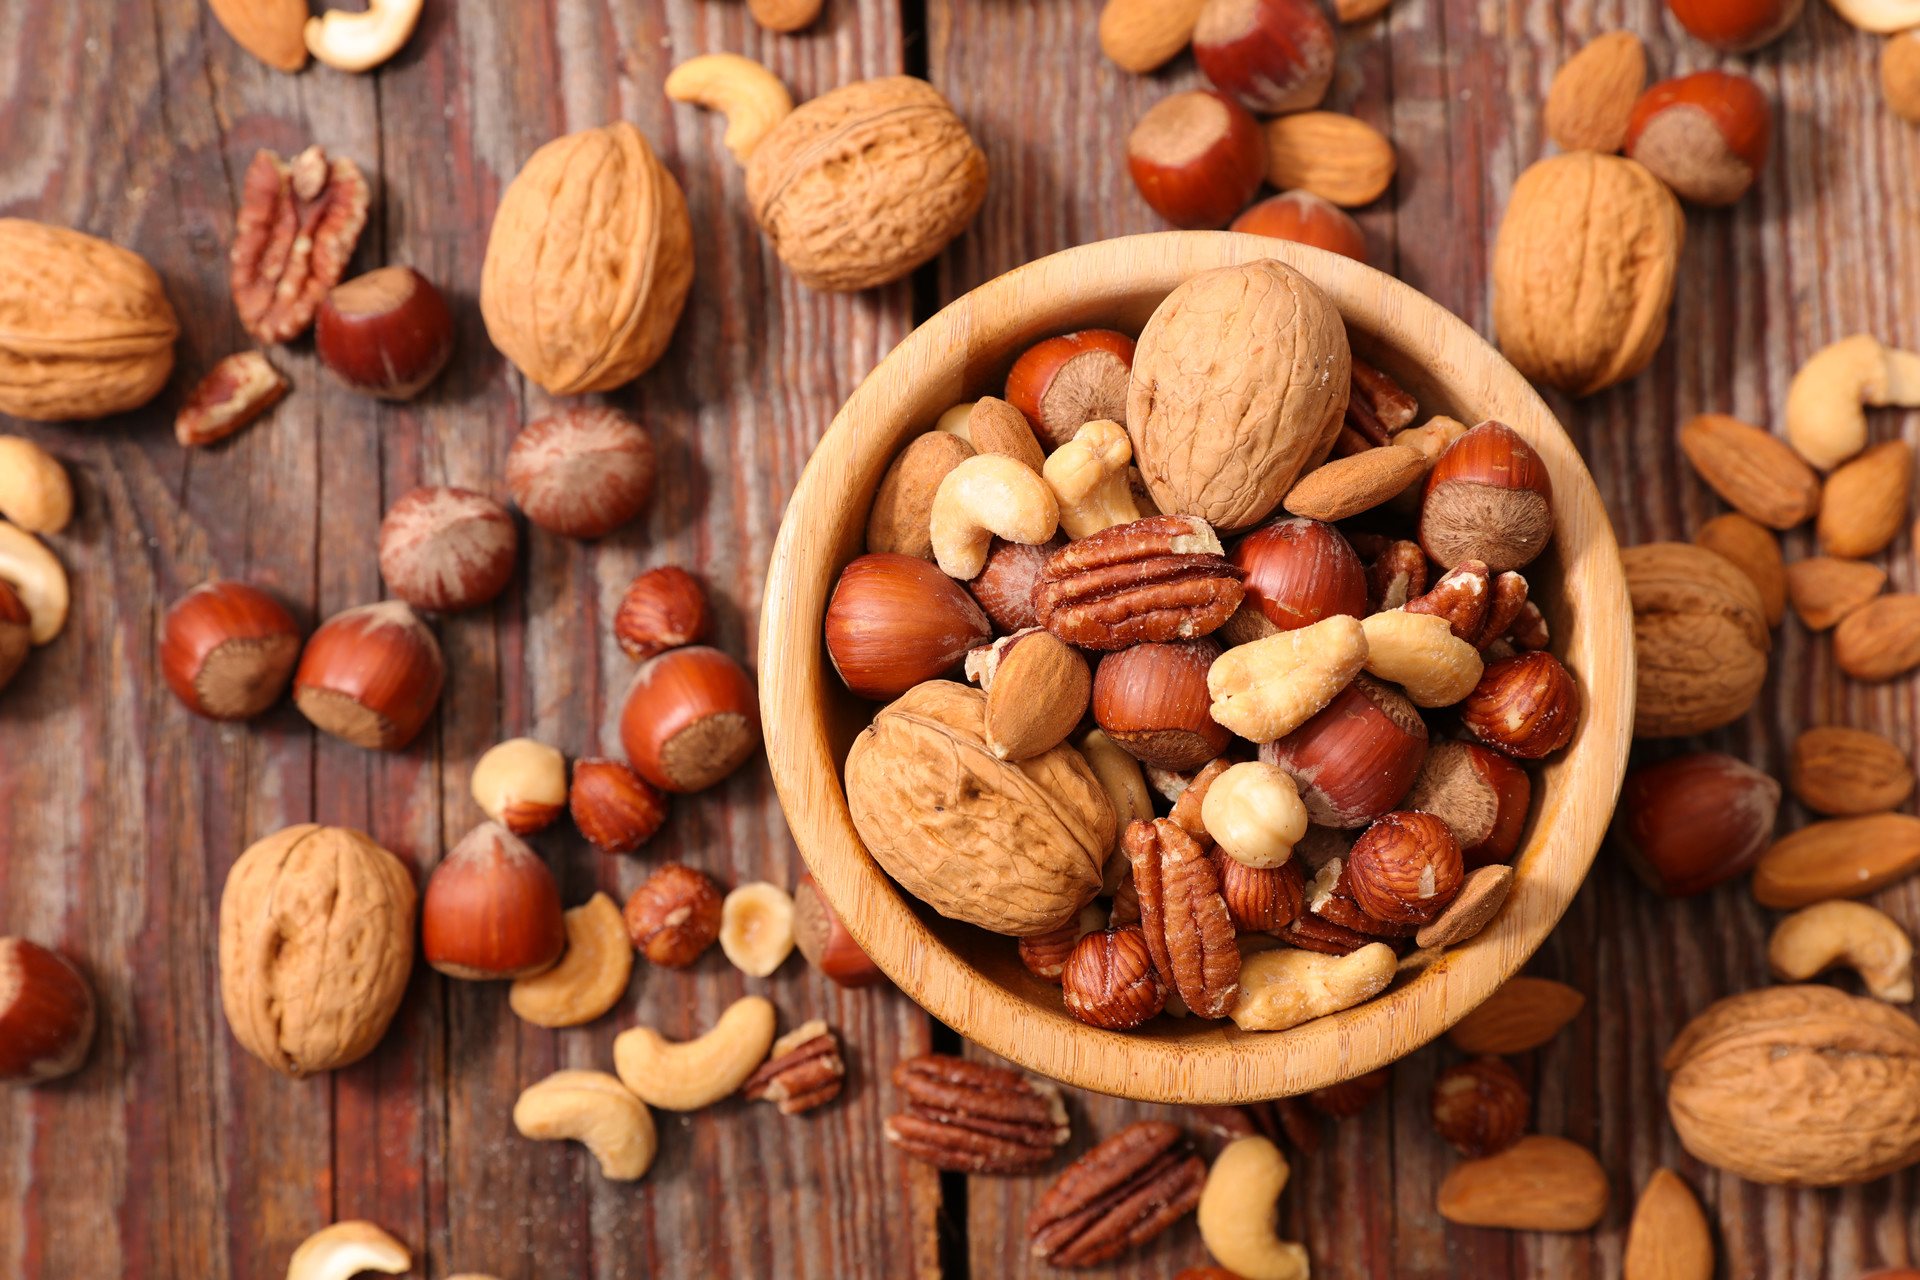 Influence of dried fruits on learning